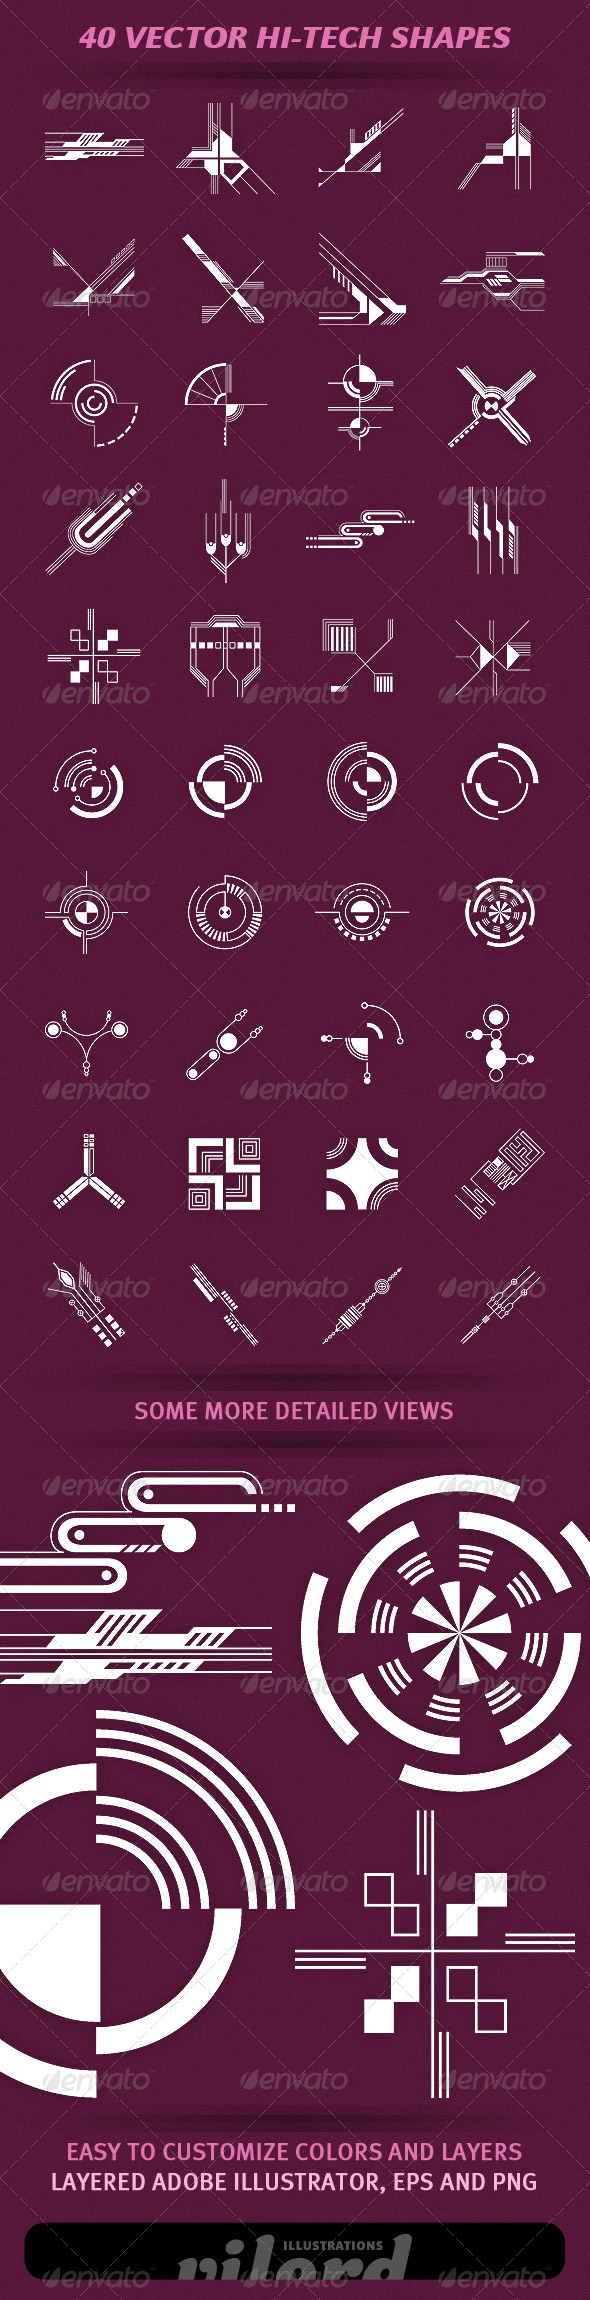 GraphicRiver 40 Vector Hi-Tech Shapes 1923342